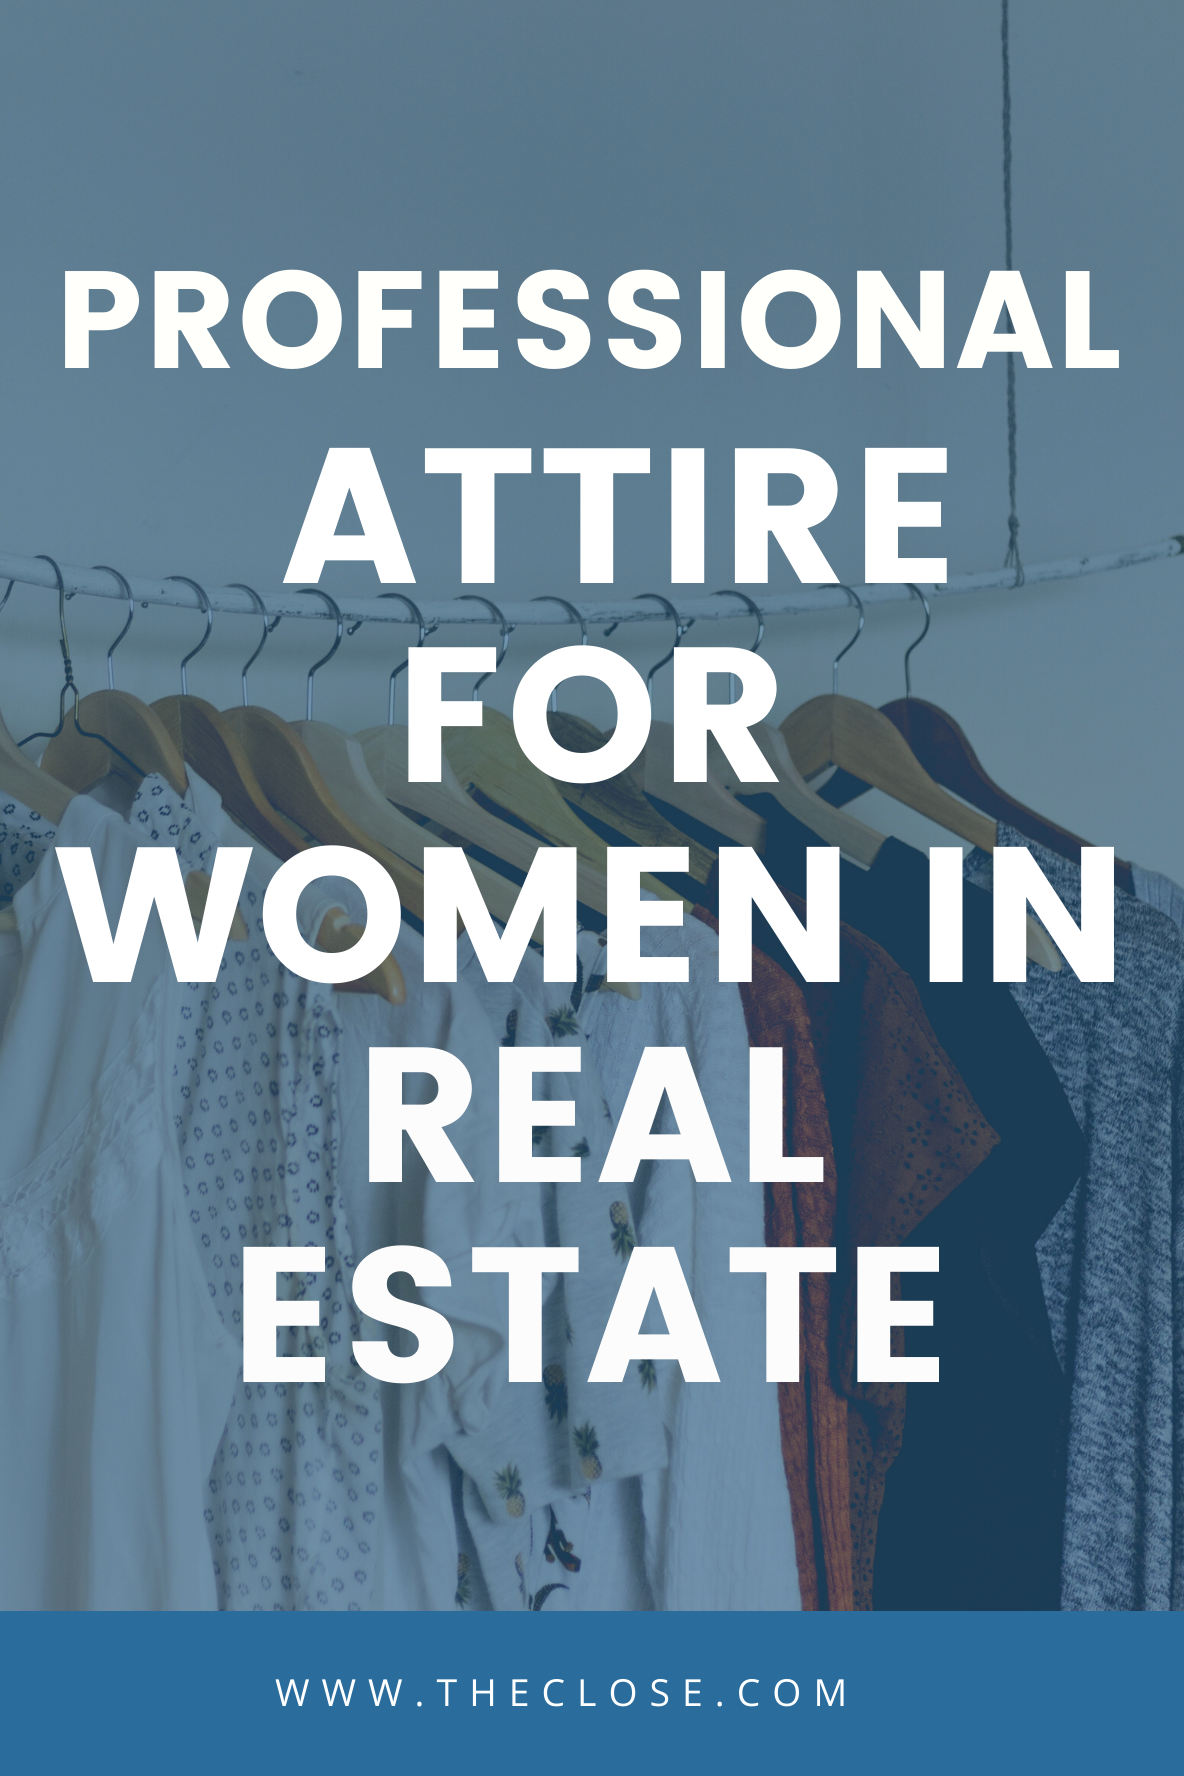 Professional Attire for Women in Real Estate